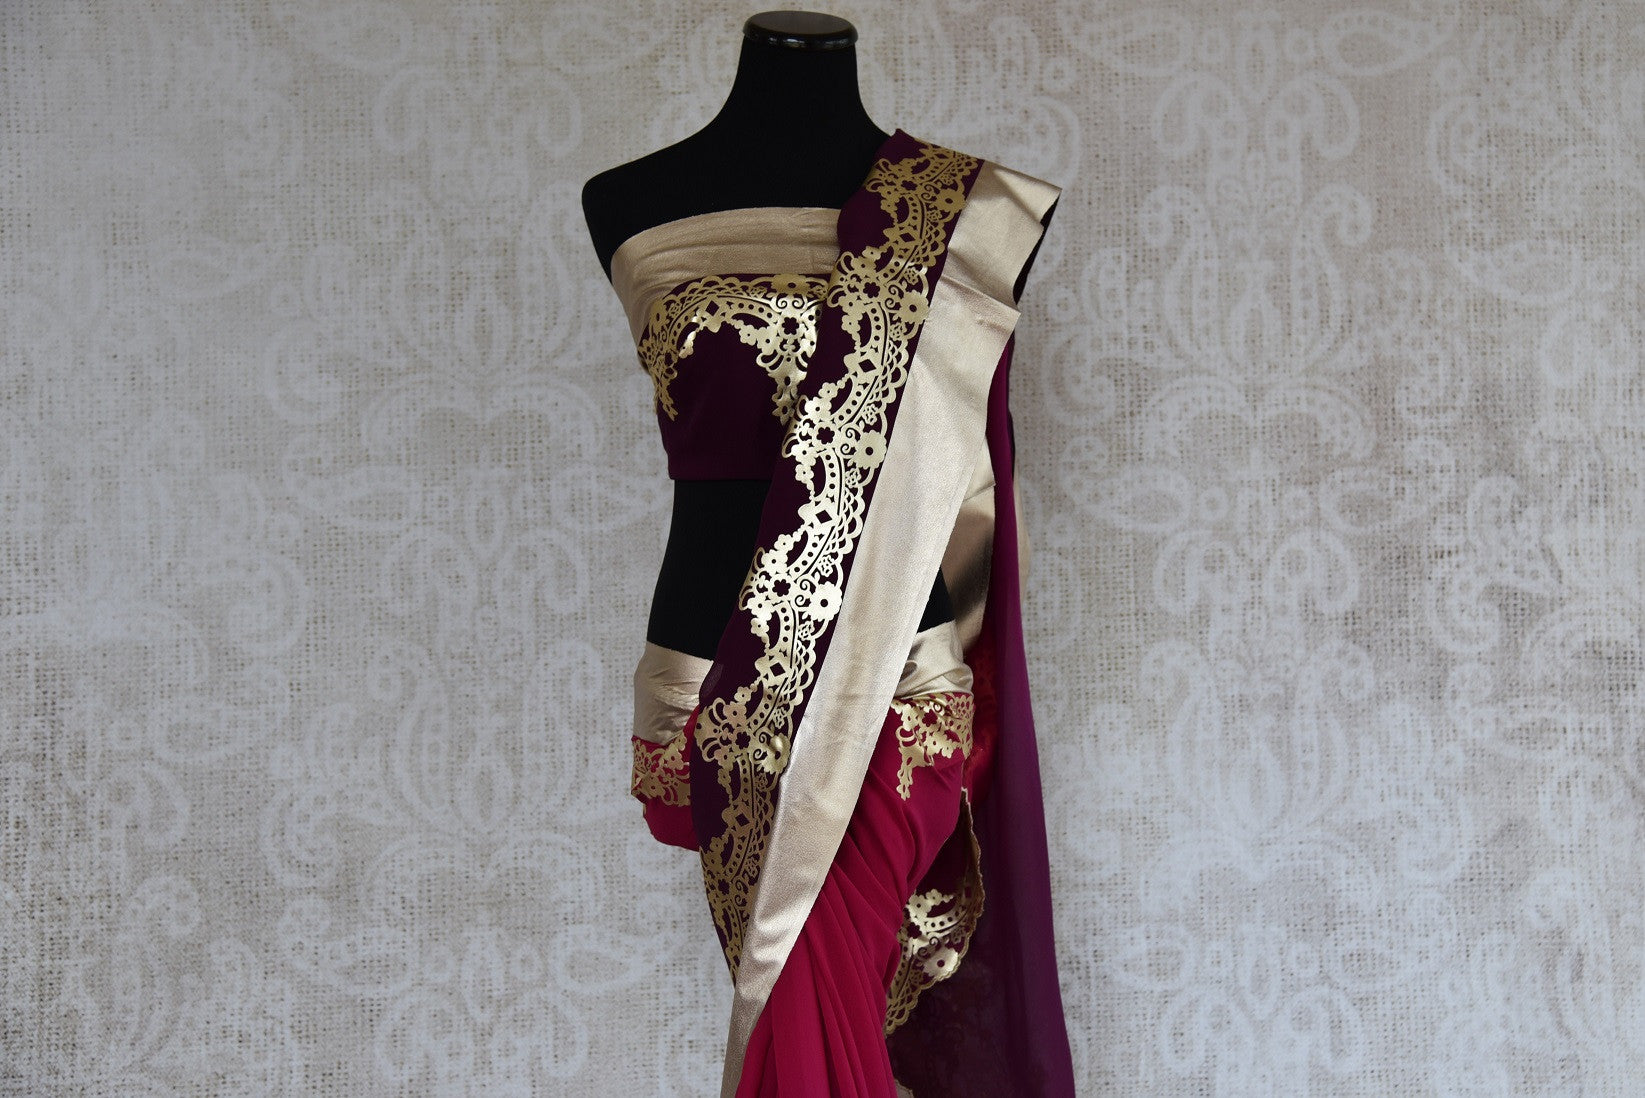 90c200 Get ready to turn heads and flutter hearts in this lovely shaded purple and wine red saree with exquisite leather work. The georgette party wear saree from India can be bought at our ethnic clothing store in USA.